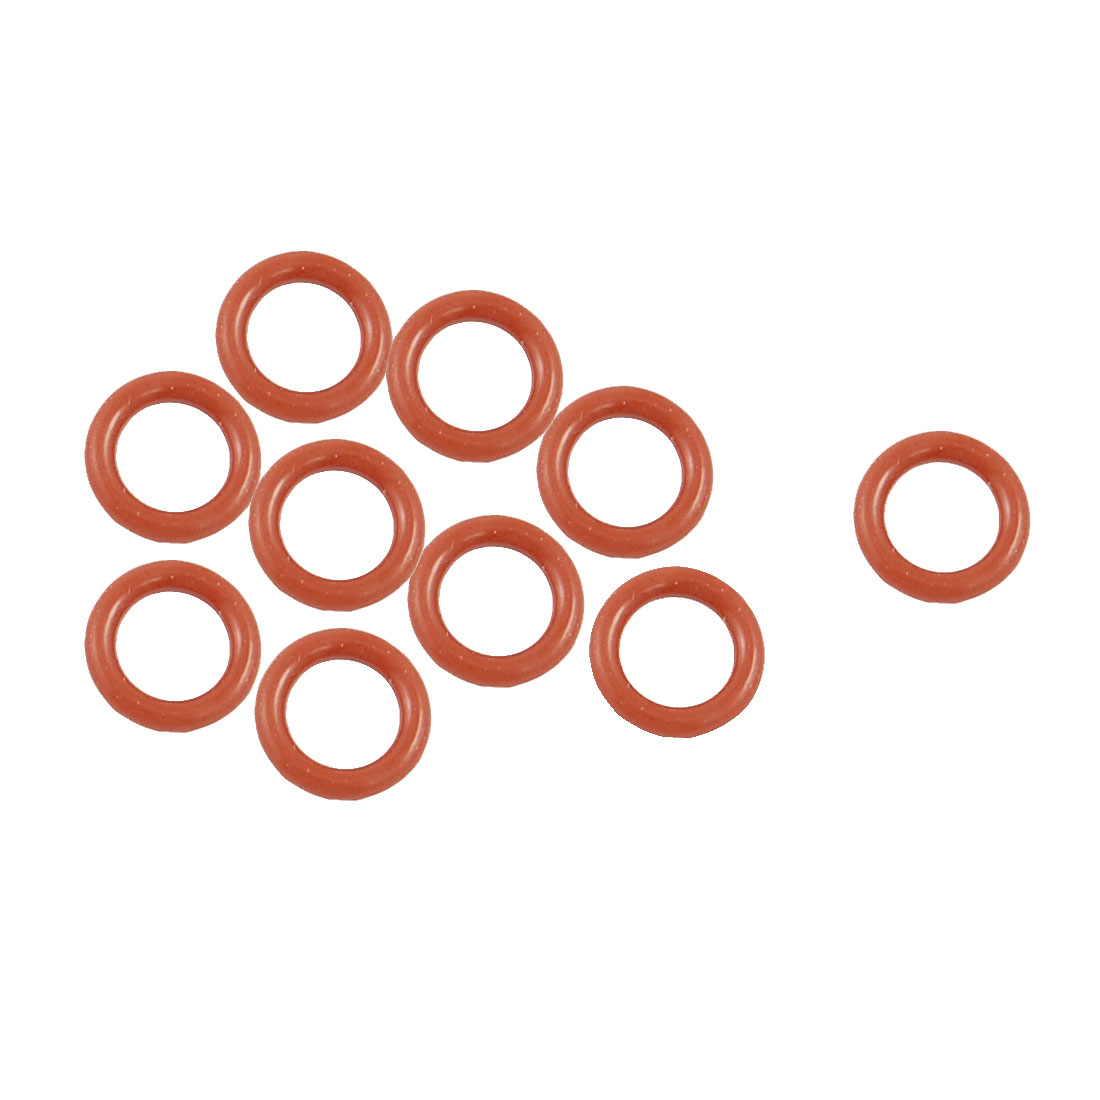 10 Pcs 13mm OD 2.5mm Thickness Dark Red Silicone O Rings Oil Seals Gasket